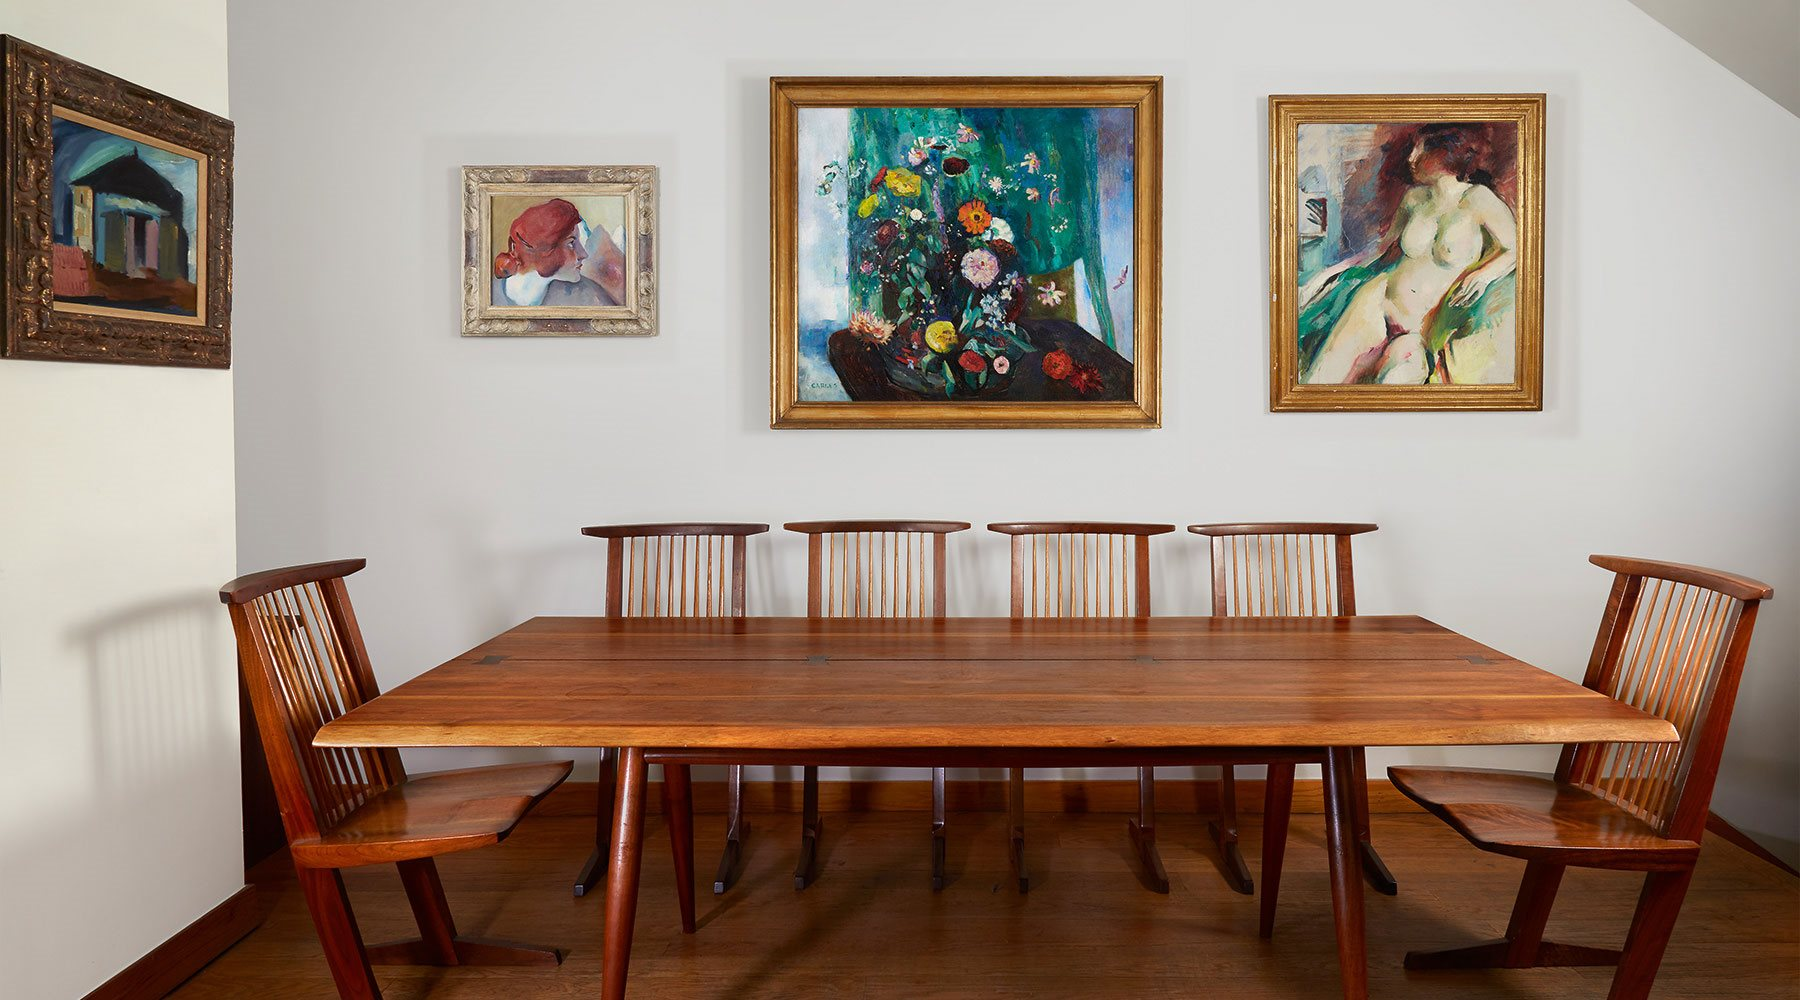 Paintings from the Ottenberg Collection featuring Arthur Beecher Carles